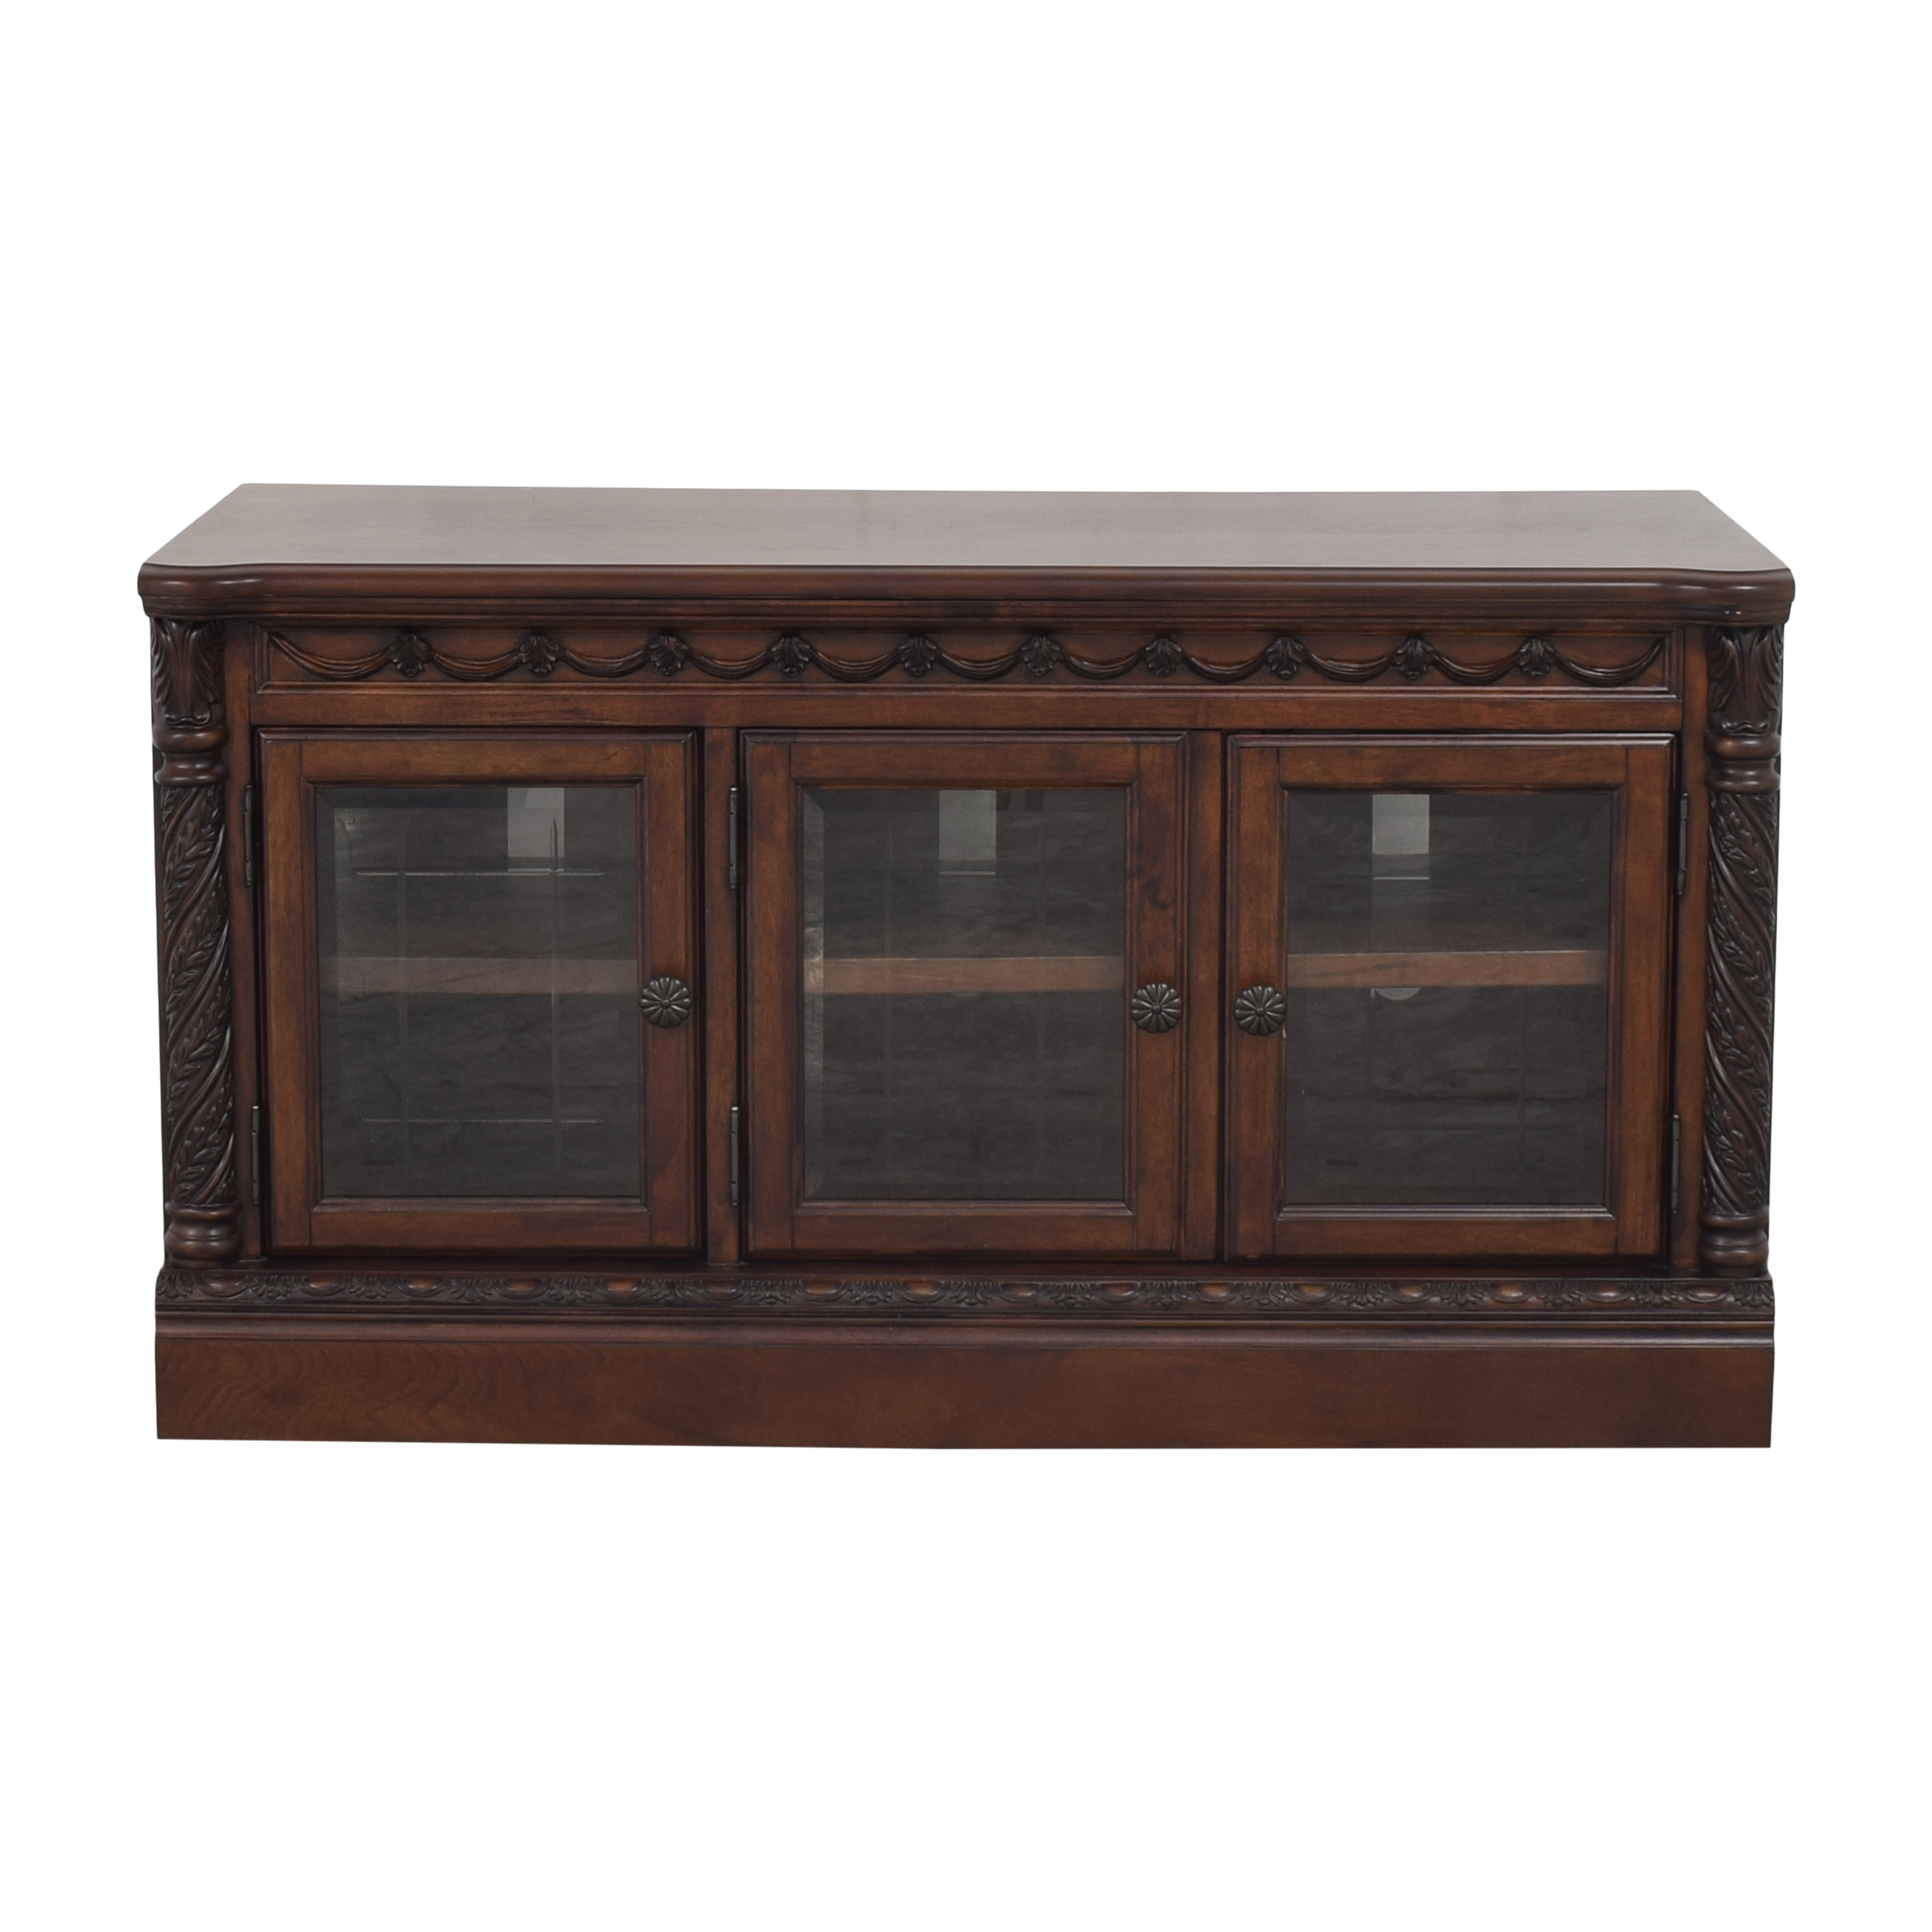 Ashley Furniture Ashley Furniture North Shore TV Stand dark brown